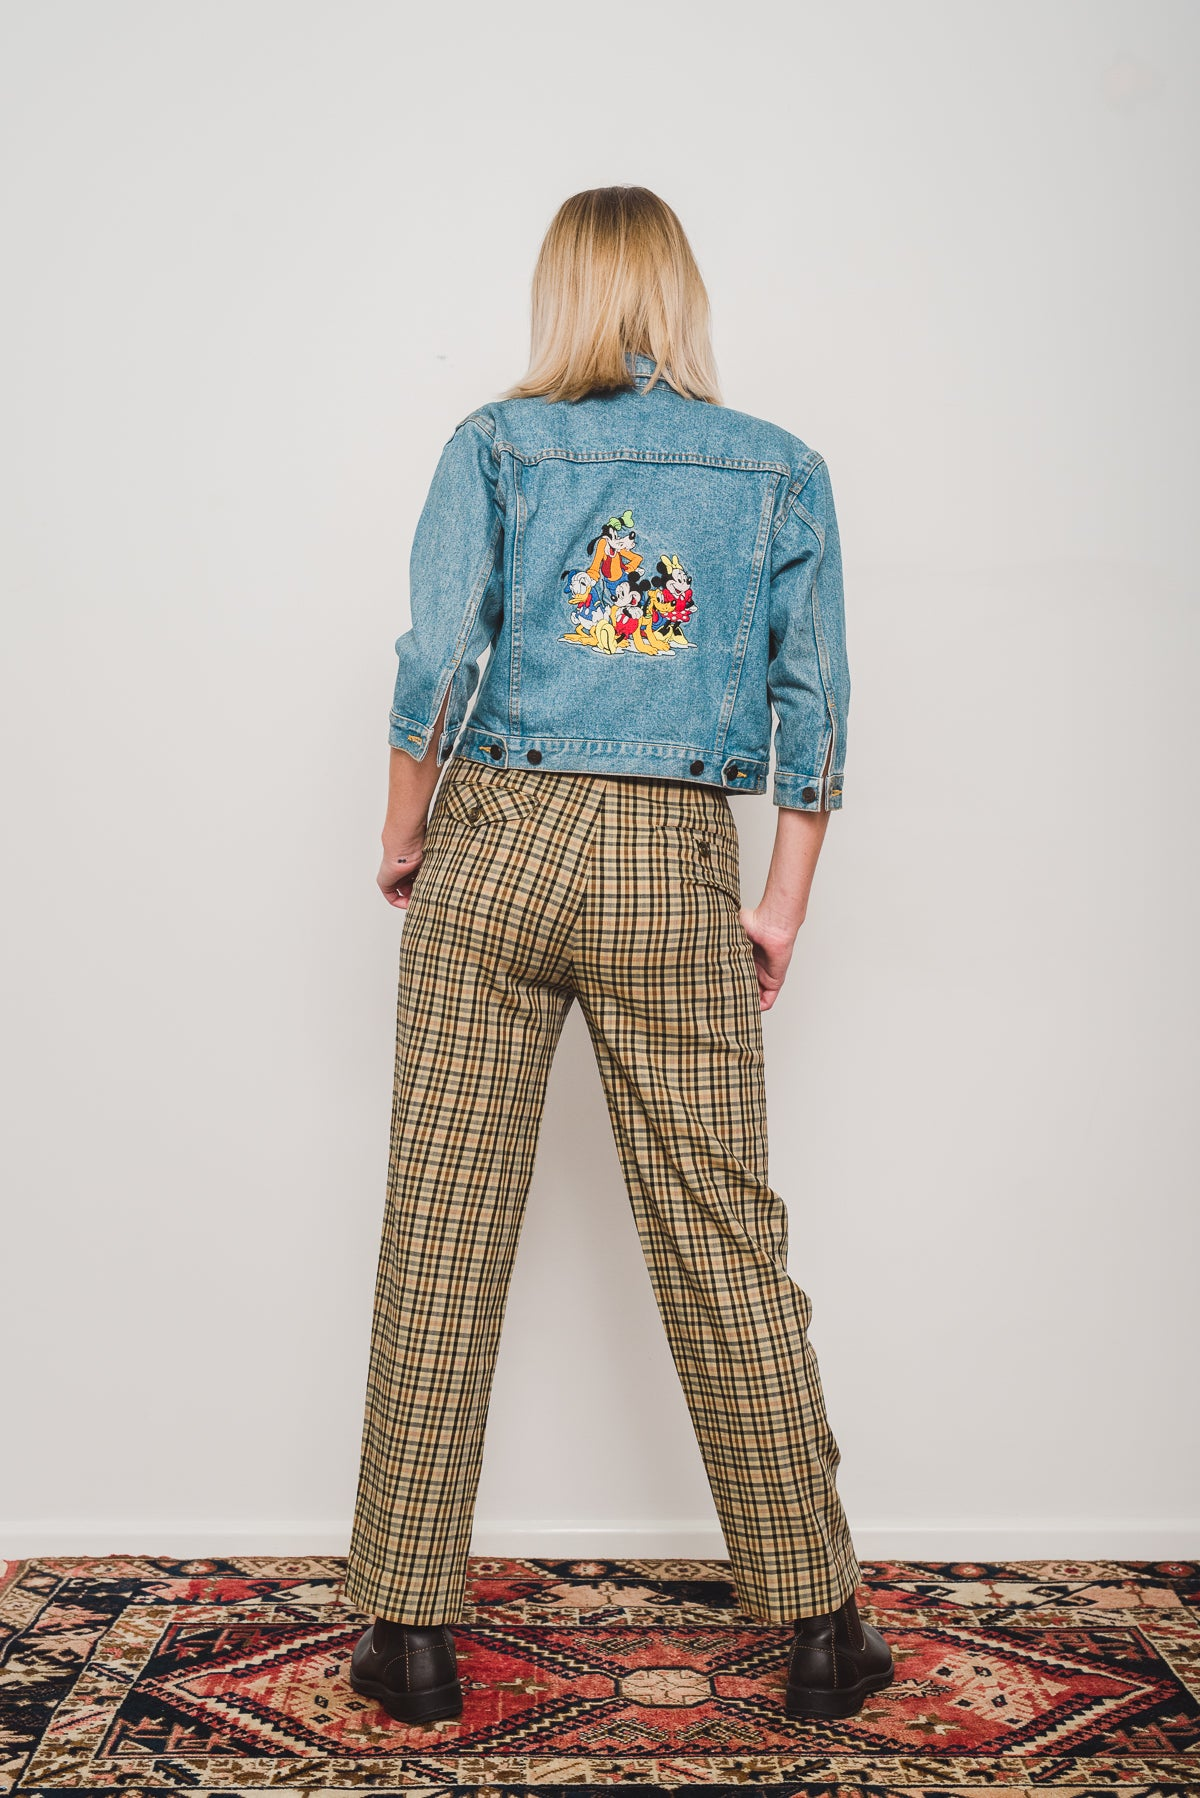 The Willow Denim Jacket